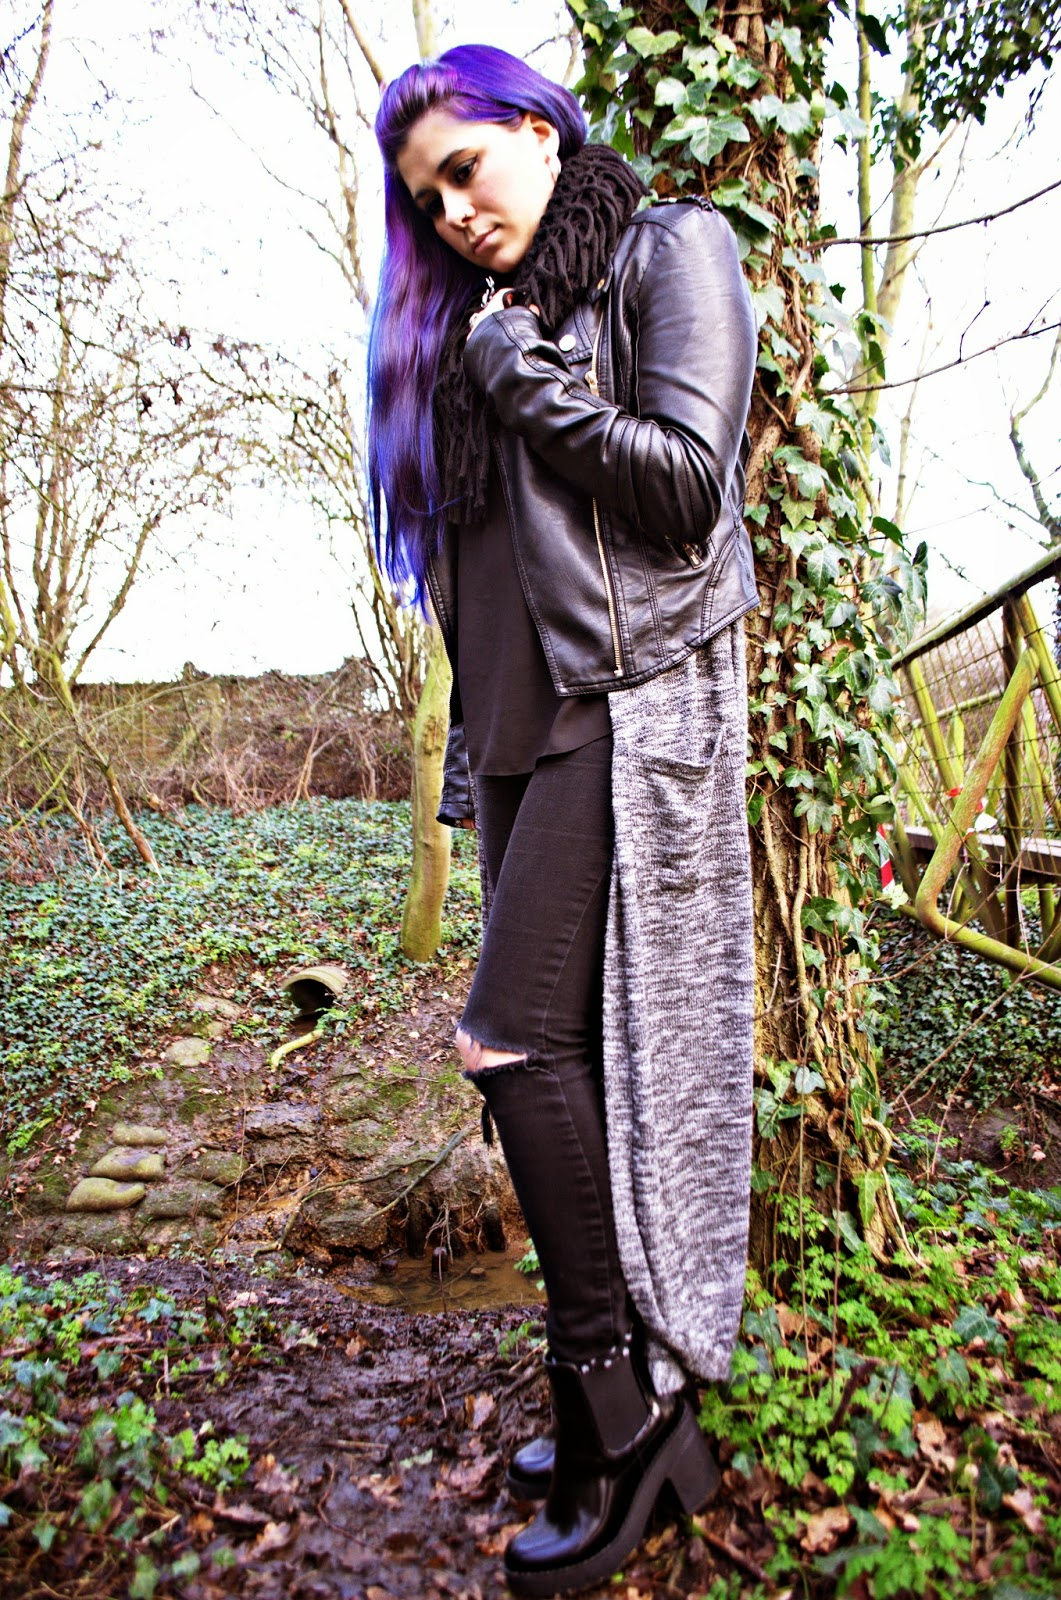 Grunge OOTD featuring Primark, Public Desire, Asos, River Island and Rebel Ocean Jewellery. Purple hair inspo.